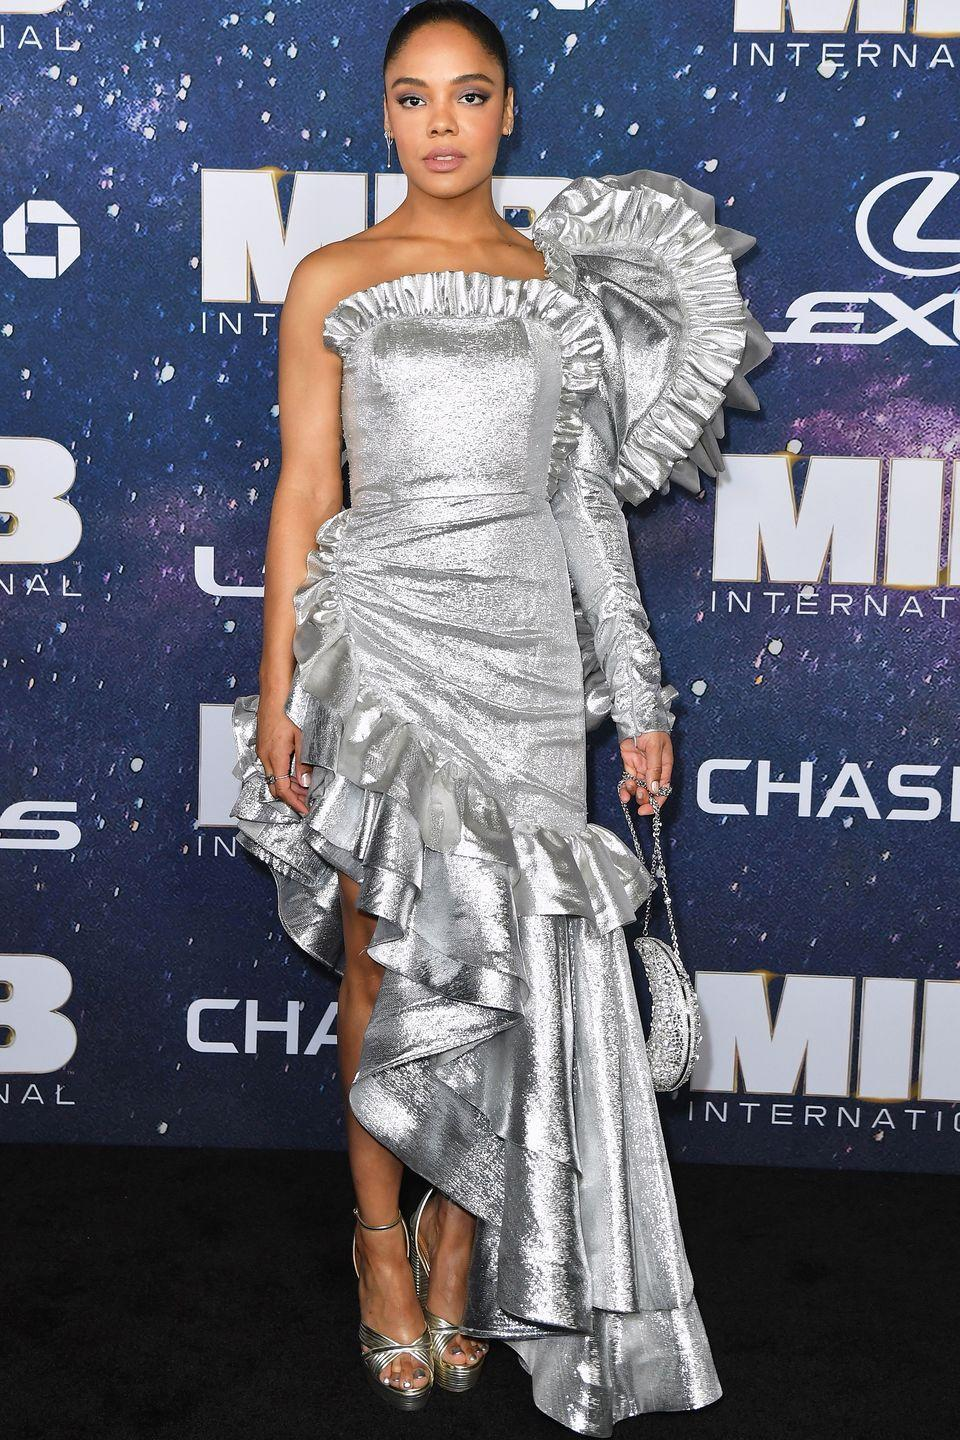 <p>Who: Tessa Thompson </p><p>When: June 11, 2019</p><p>Wearing: Rodarte</p><p>Why: Tessa Thompson's metallic gown at the <em>Men In Black: International </em>premiere in NYC puts the <em>extra</em> in extraterrestrial. Her look alone could save us from an alien invasion, winning best dressed of the week. </p>